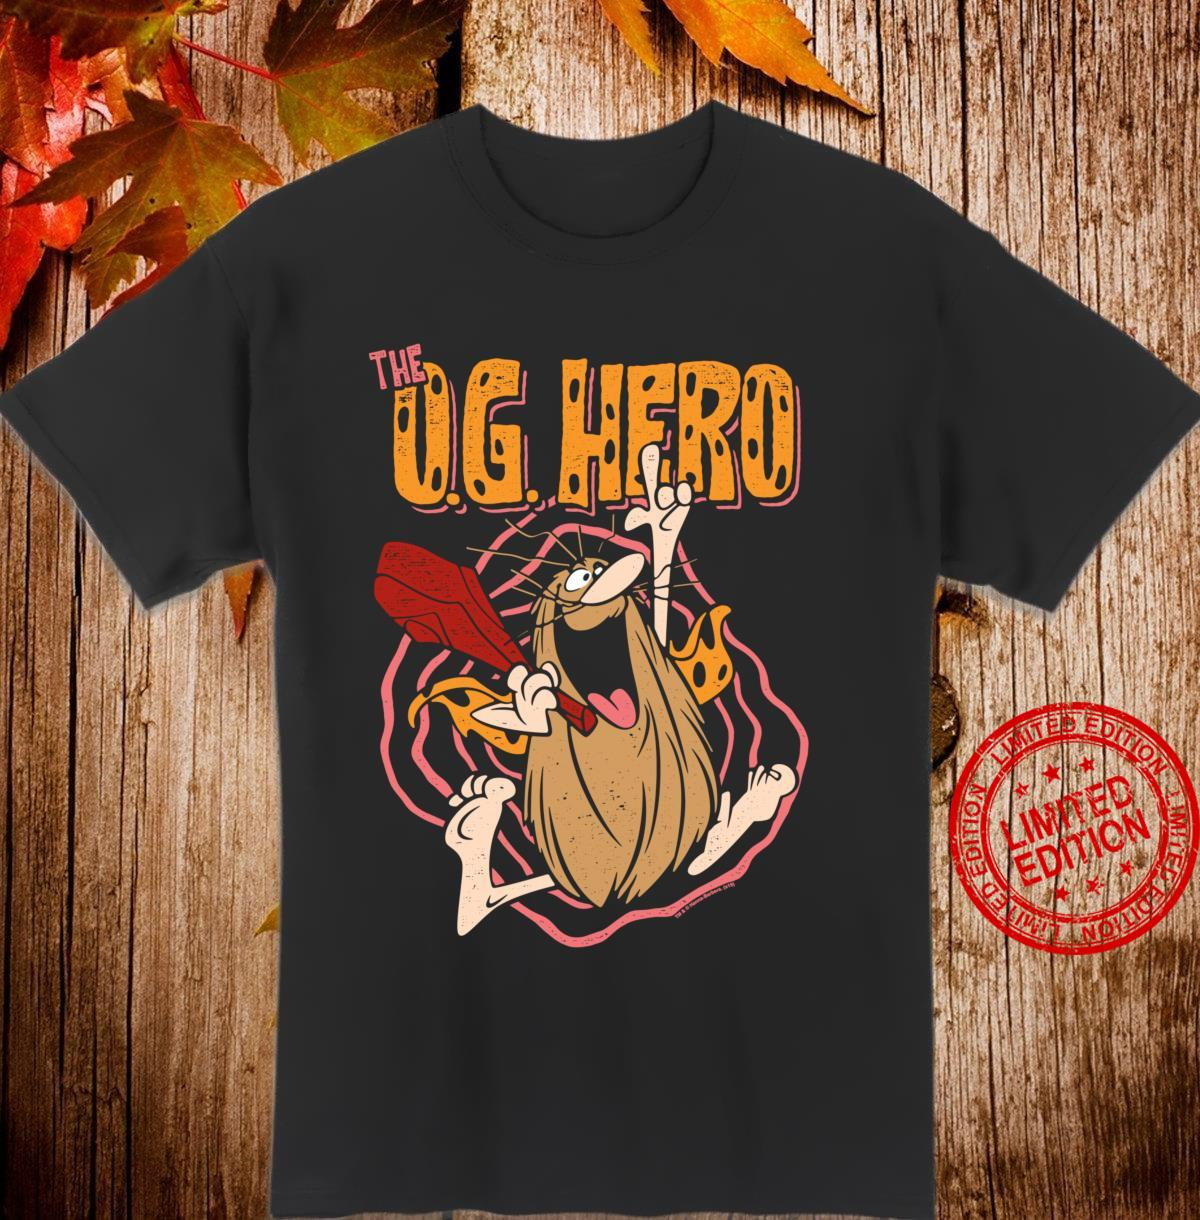 Captain Caveman OG Hero Shirt